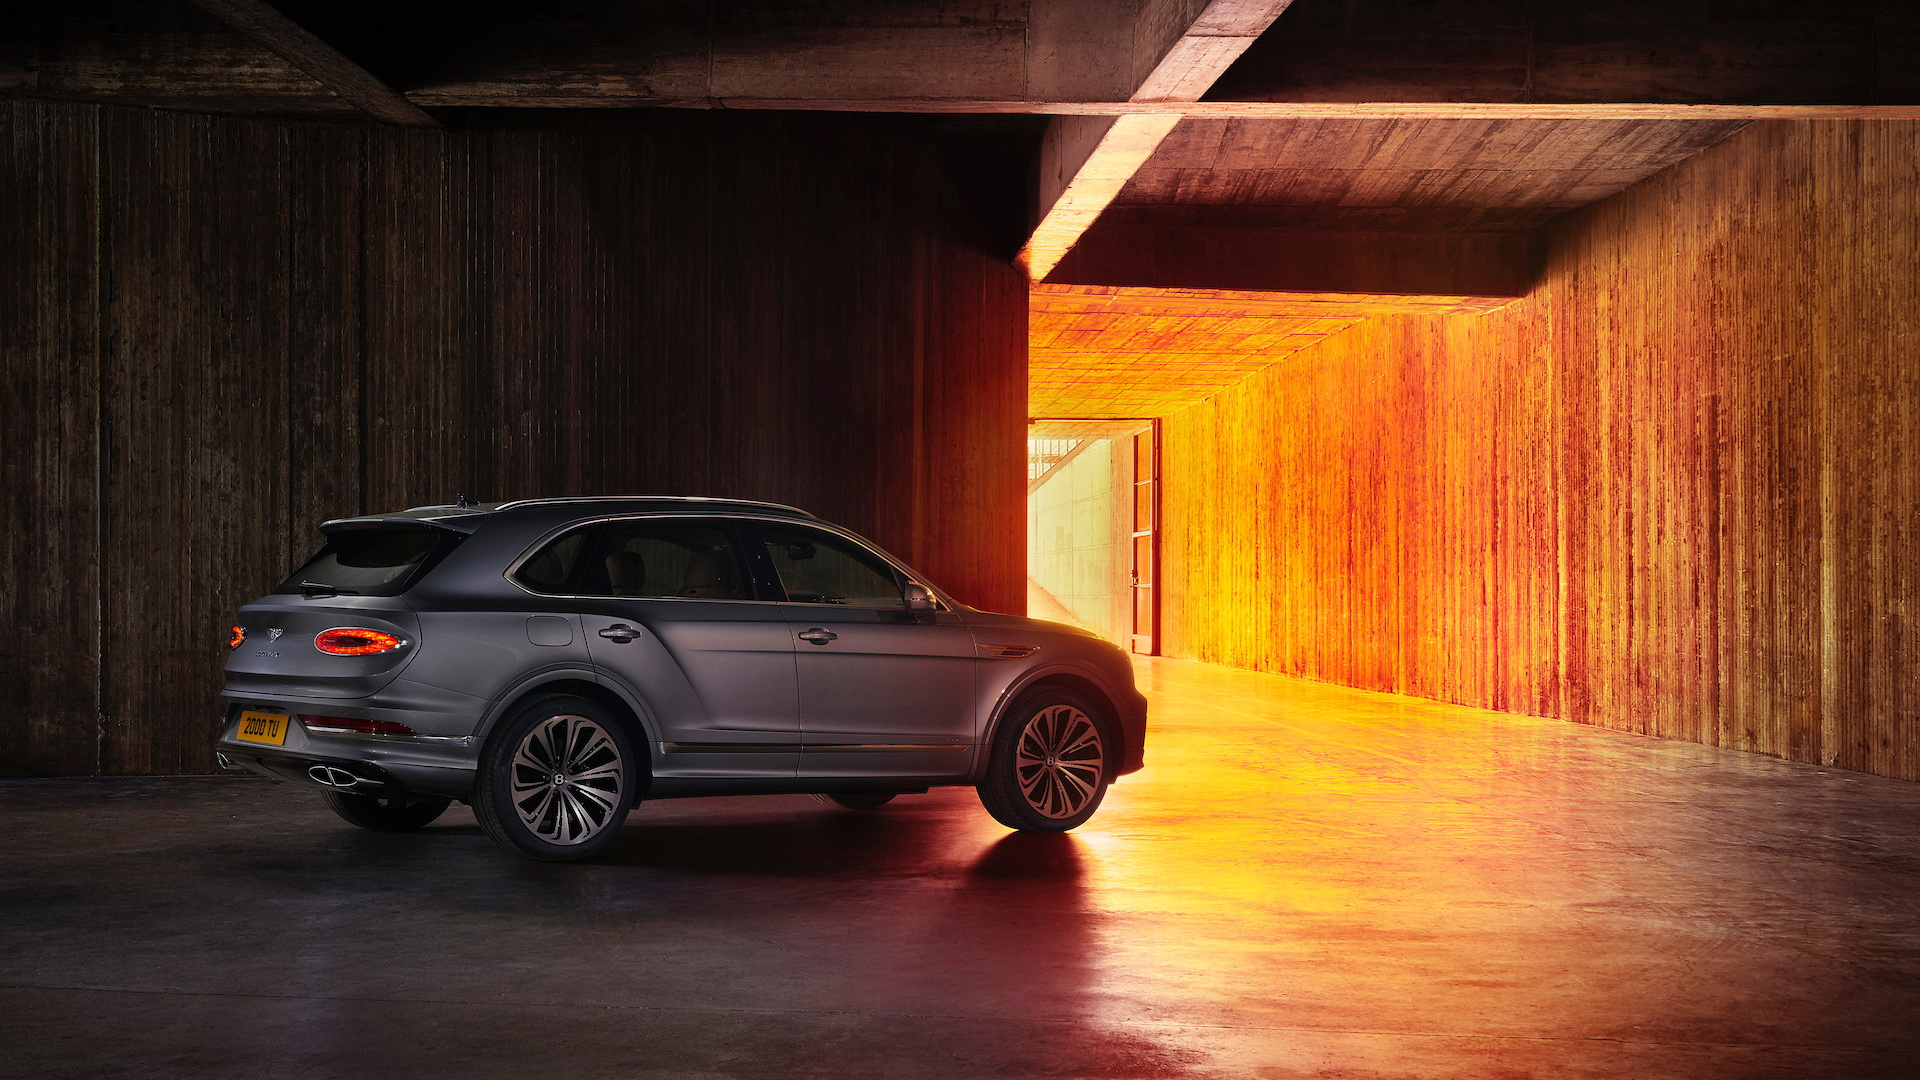 2021 Bentley Bentayga Preview Mid Cycle Update Sees New Styling Added Comfort For Luxury Suv